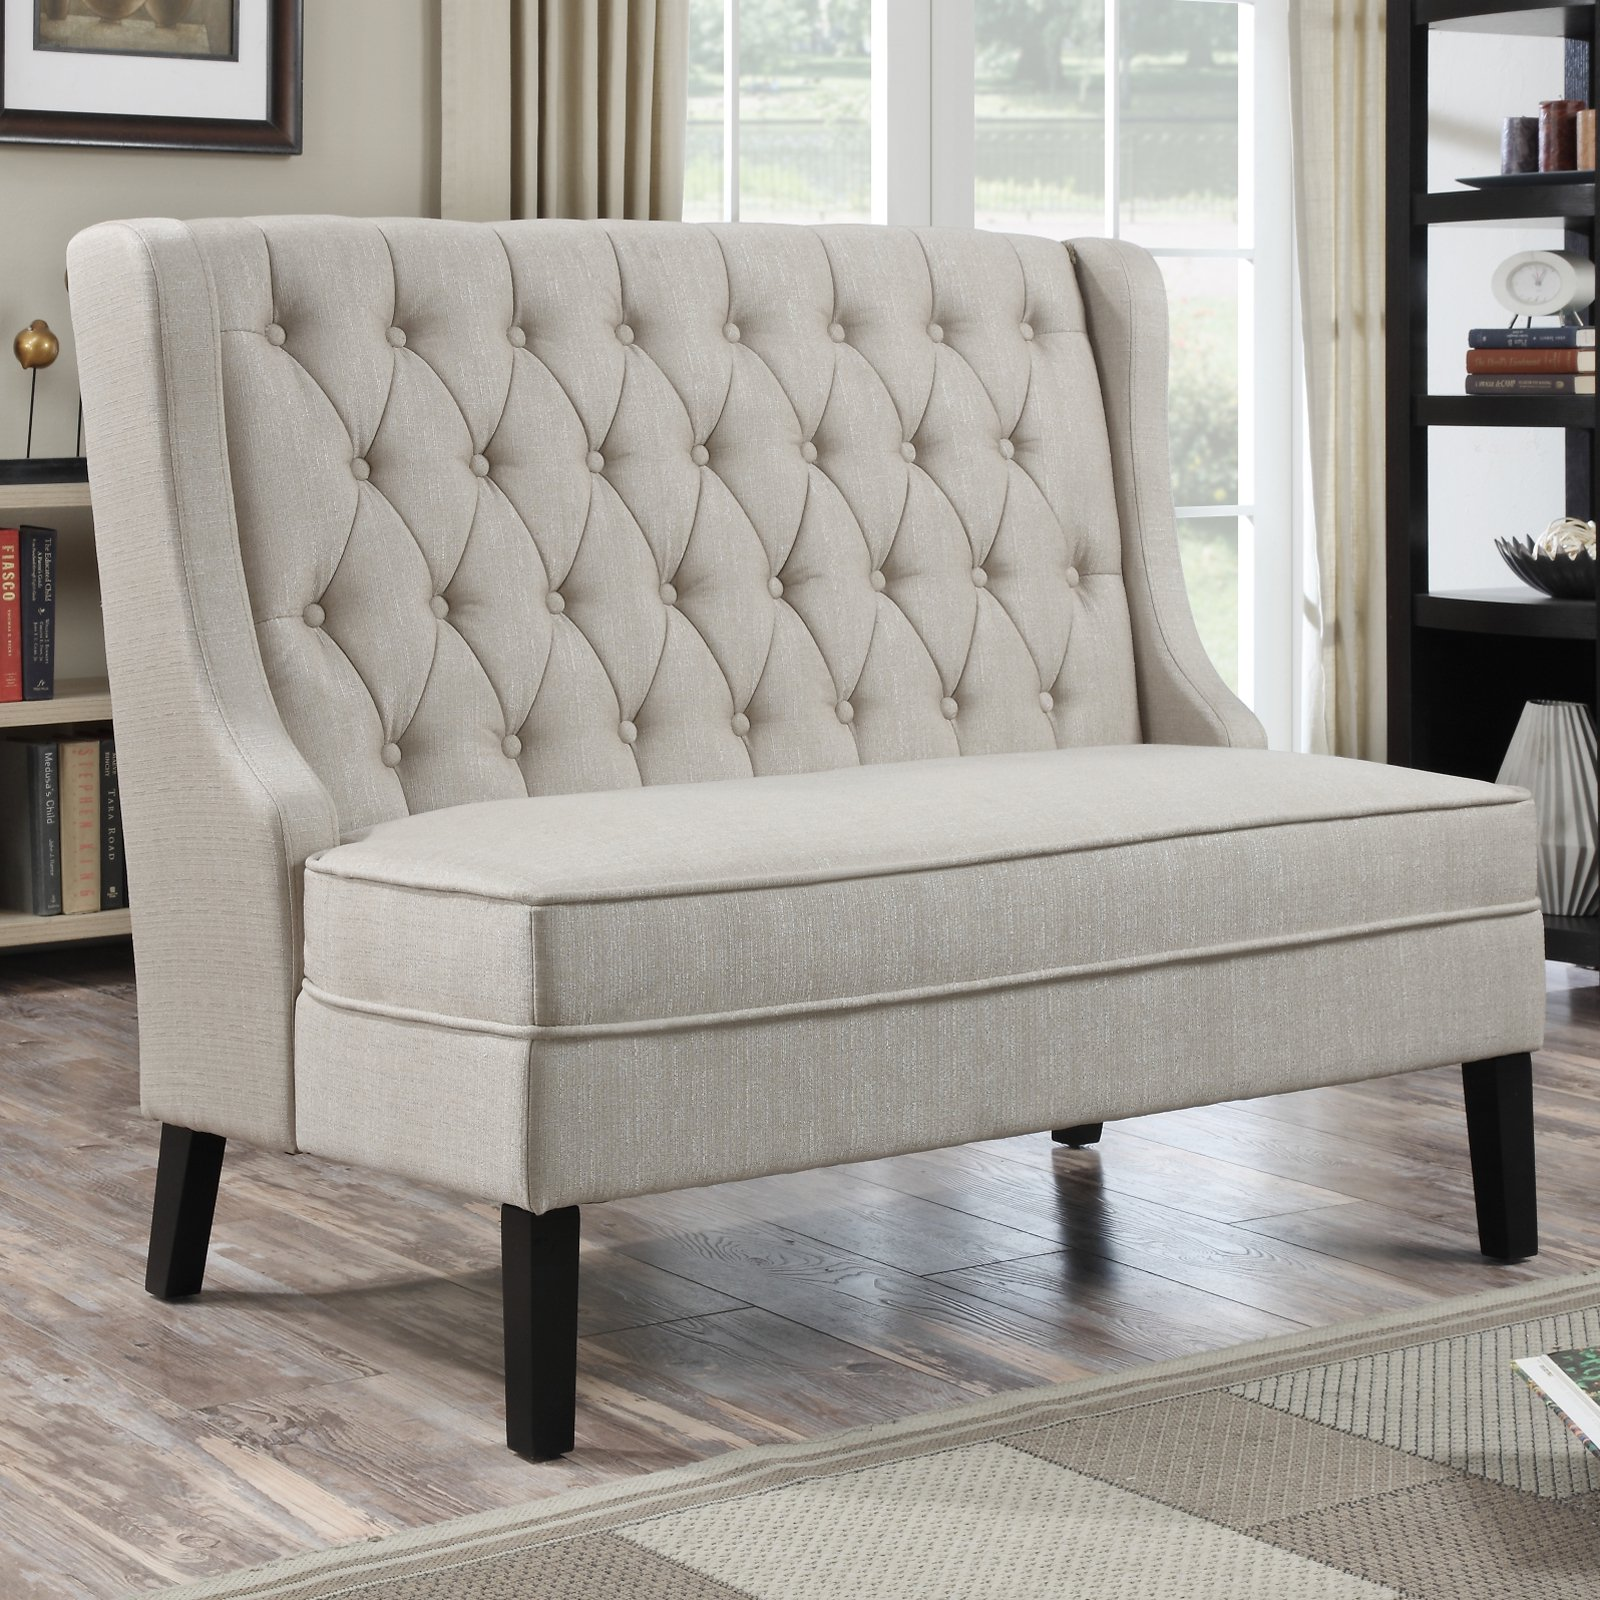 Home Meridian Banquette Bench - Tuxedo Oatmeal